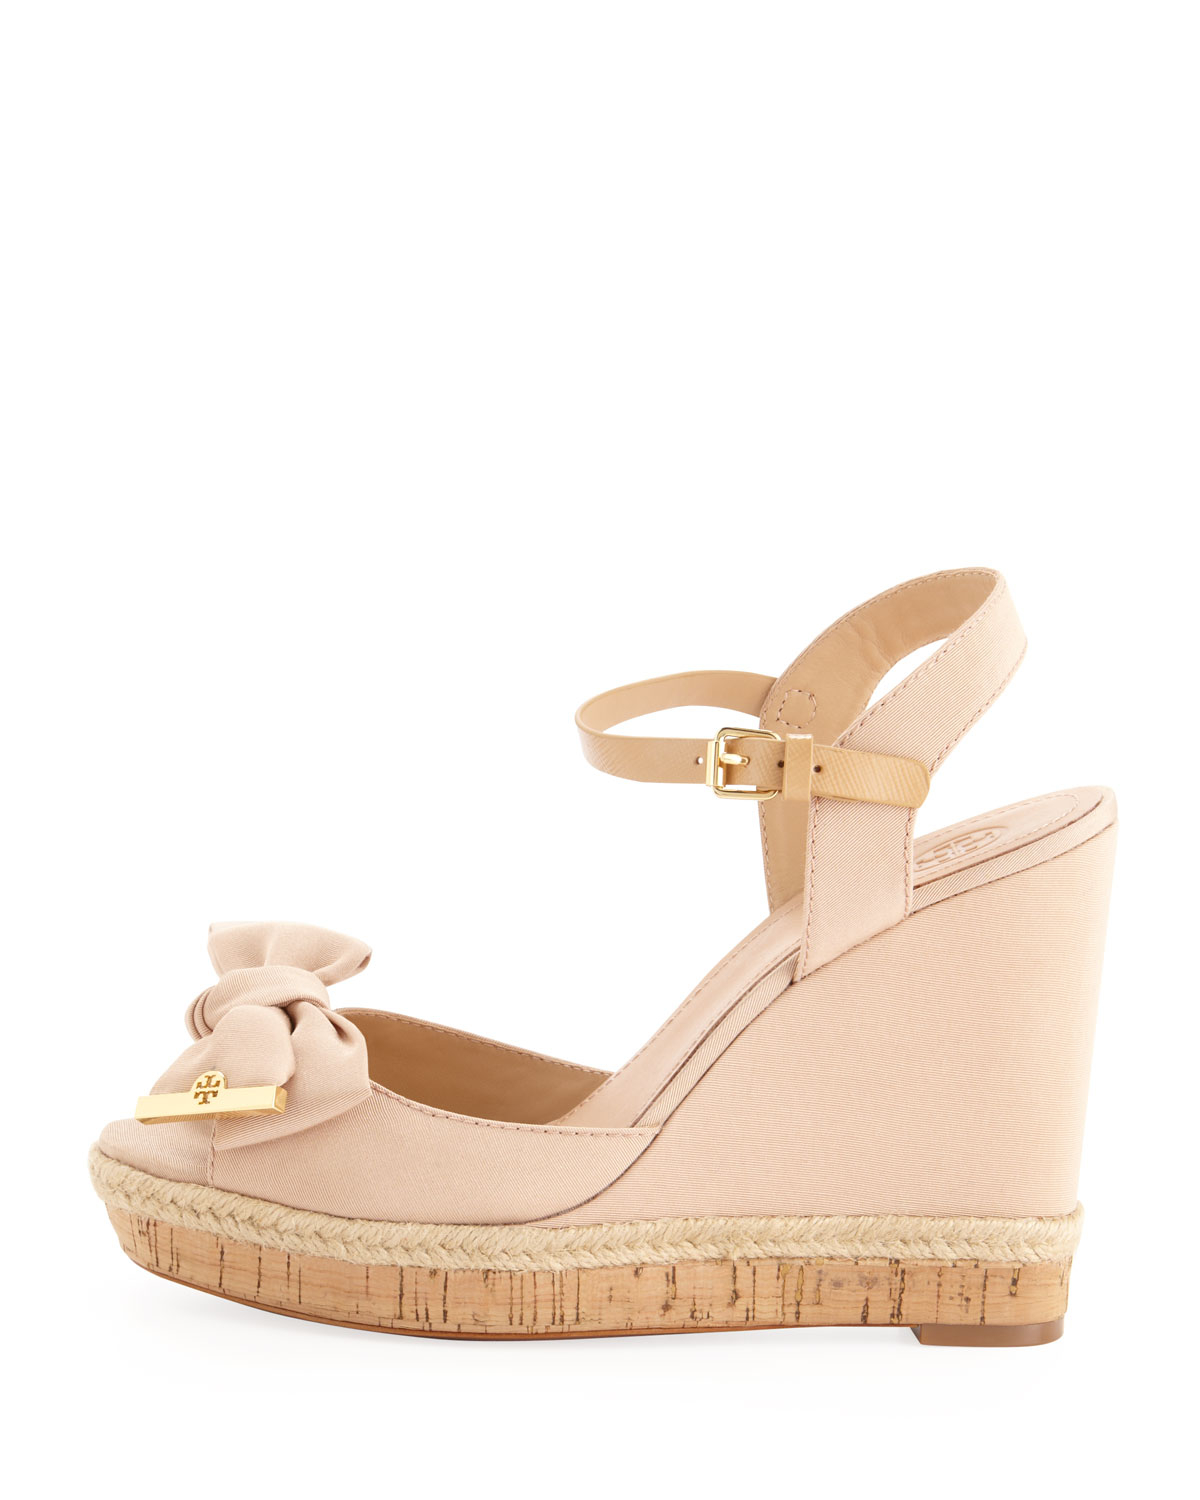 ebf49b513bbfaa Lyst - Tory Burch Penny Faille Bow Wedge in Pink